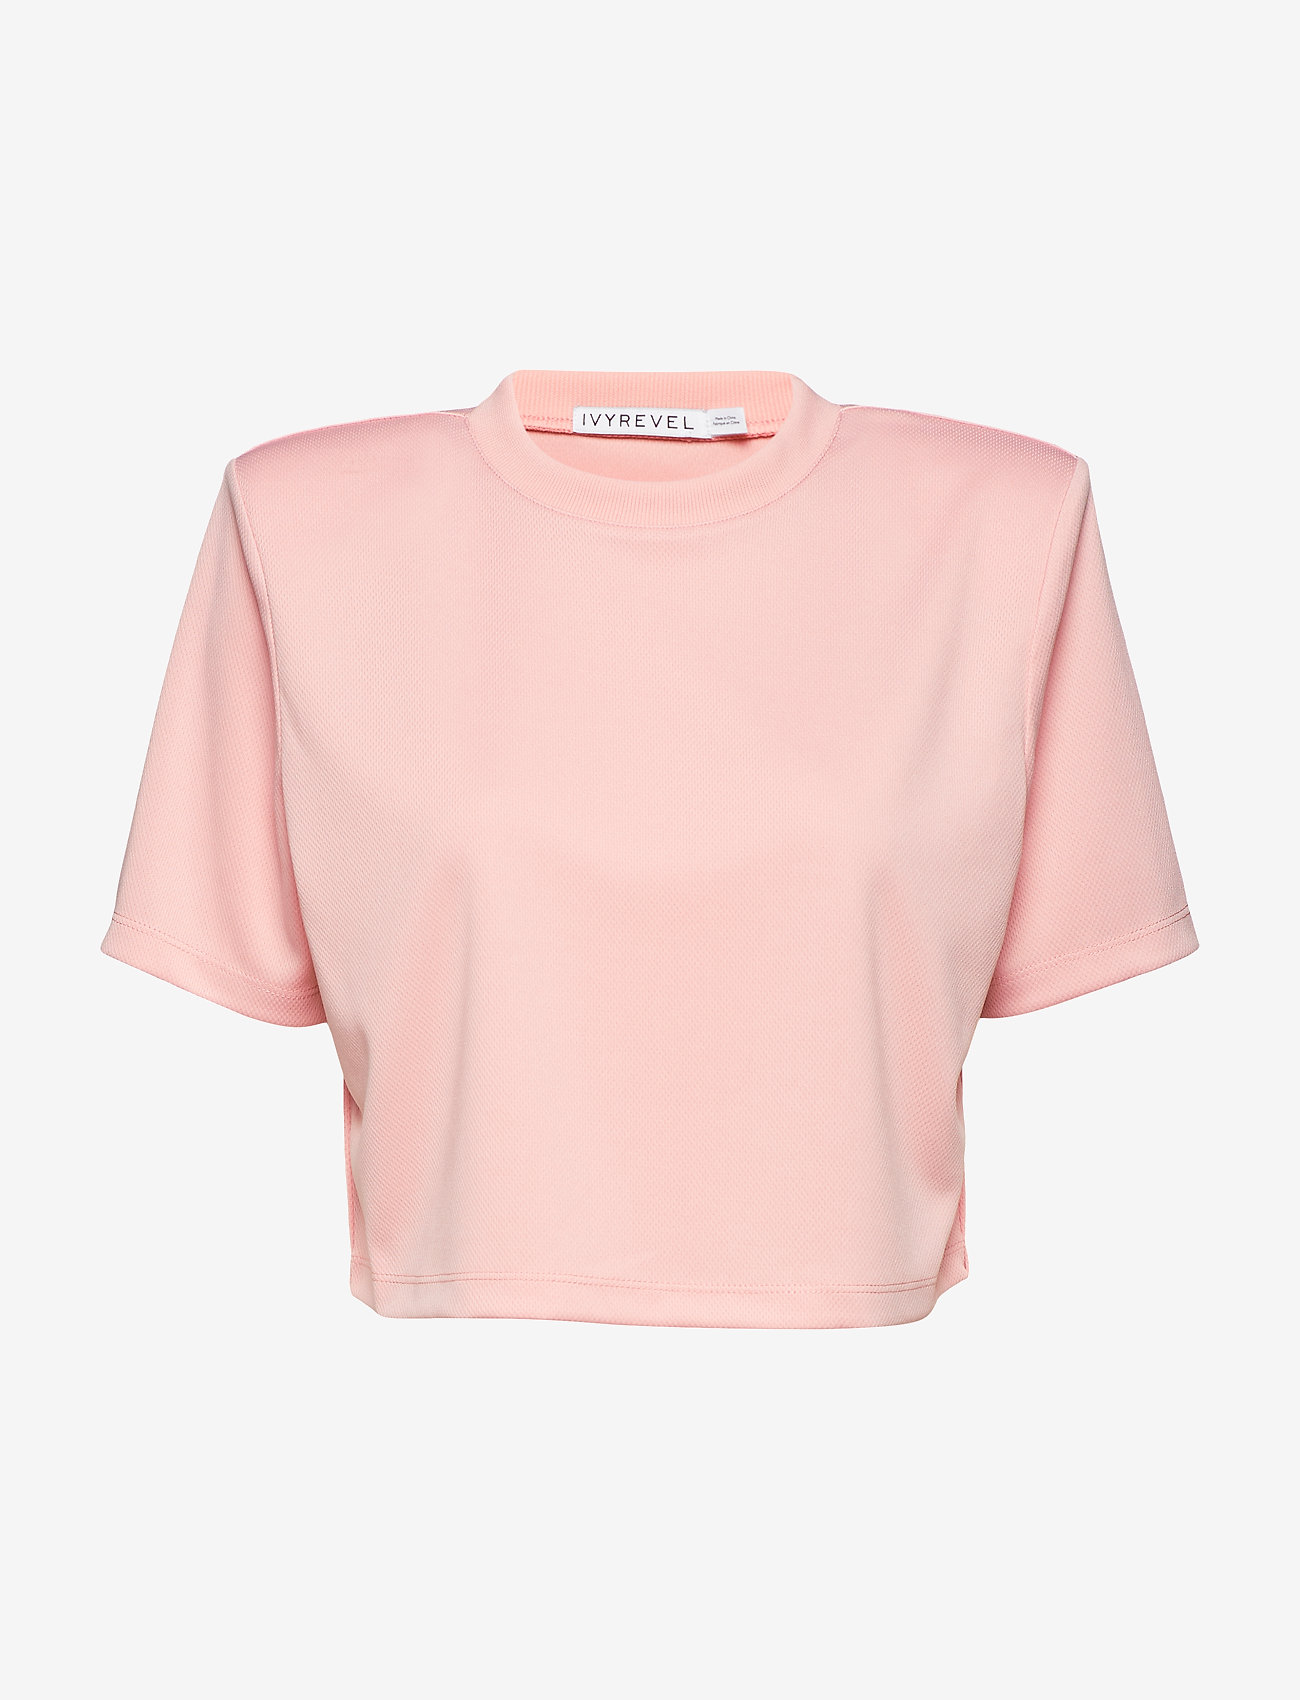 Boxy Sport Mesh Top (Light Pink) (147.60 kr) - Ivyrevel